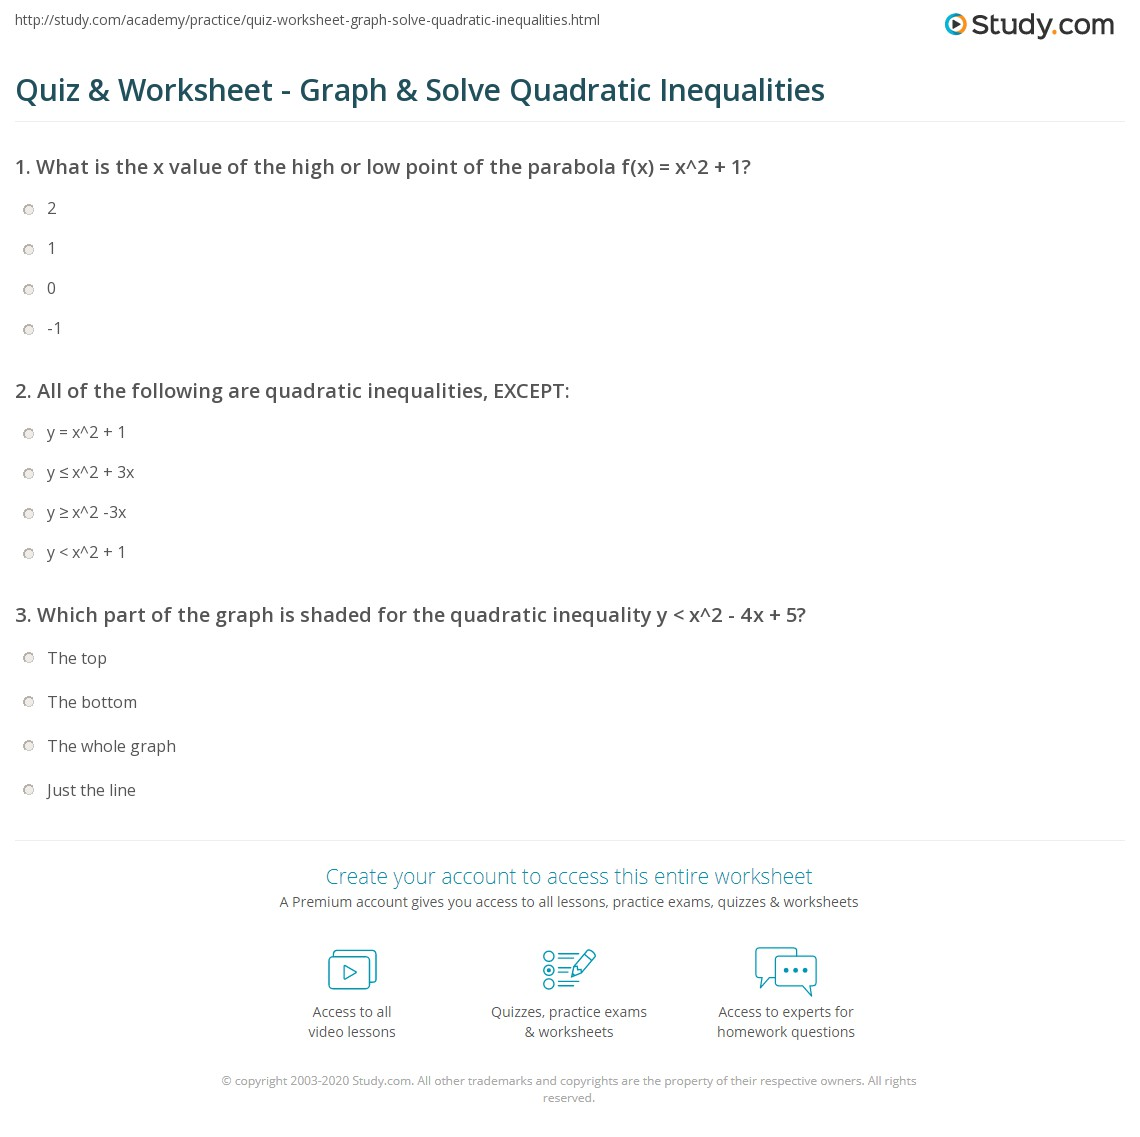 worksheet Quadratic Inequalities Worksheet quiz worksheet graph solve quadratic inequalities study com print graphing solving examples process worksheet